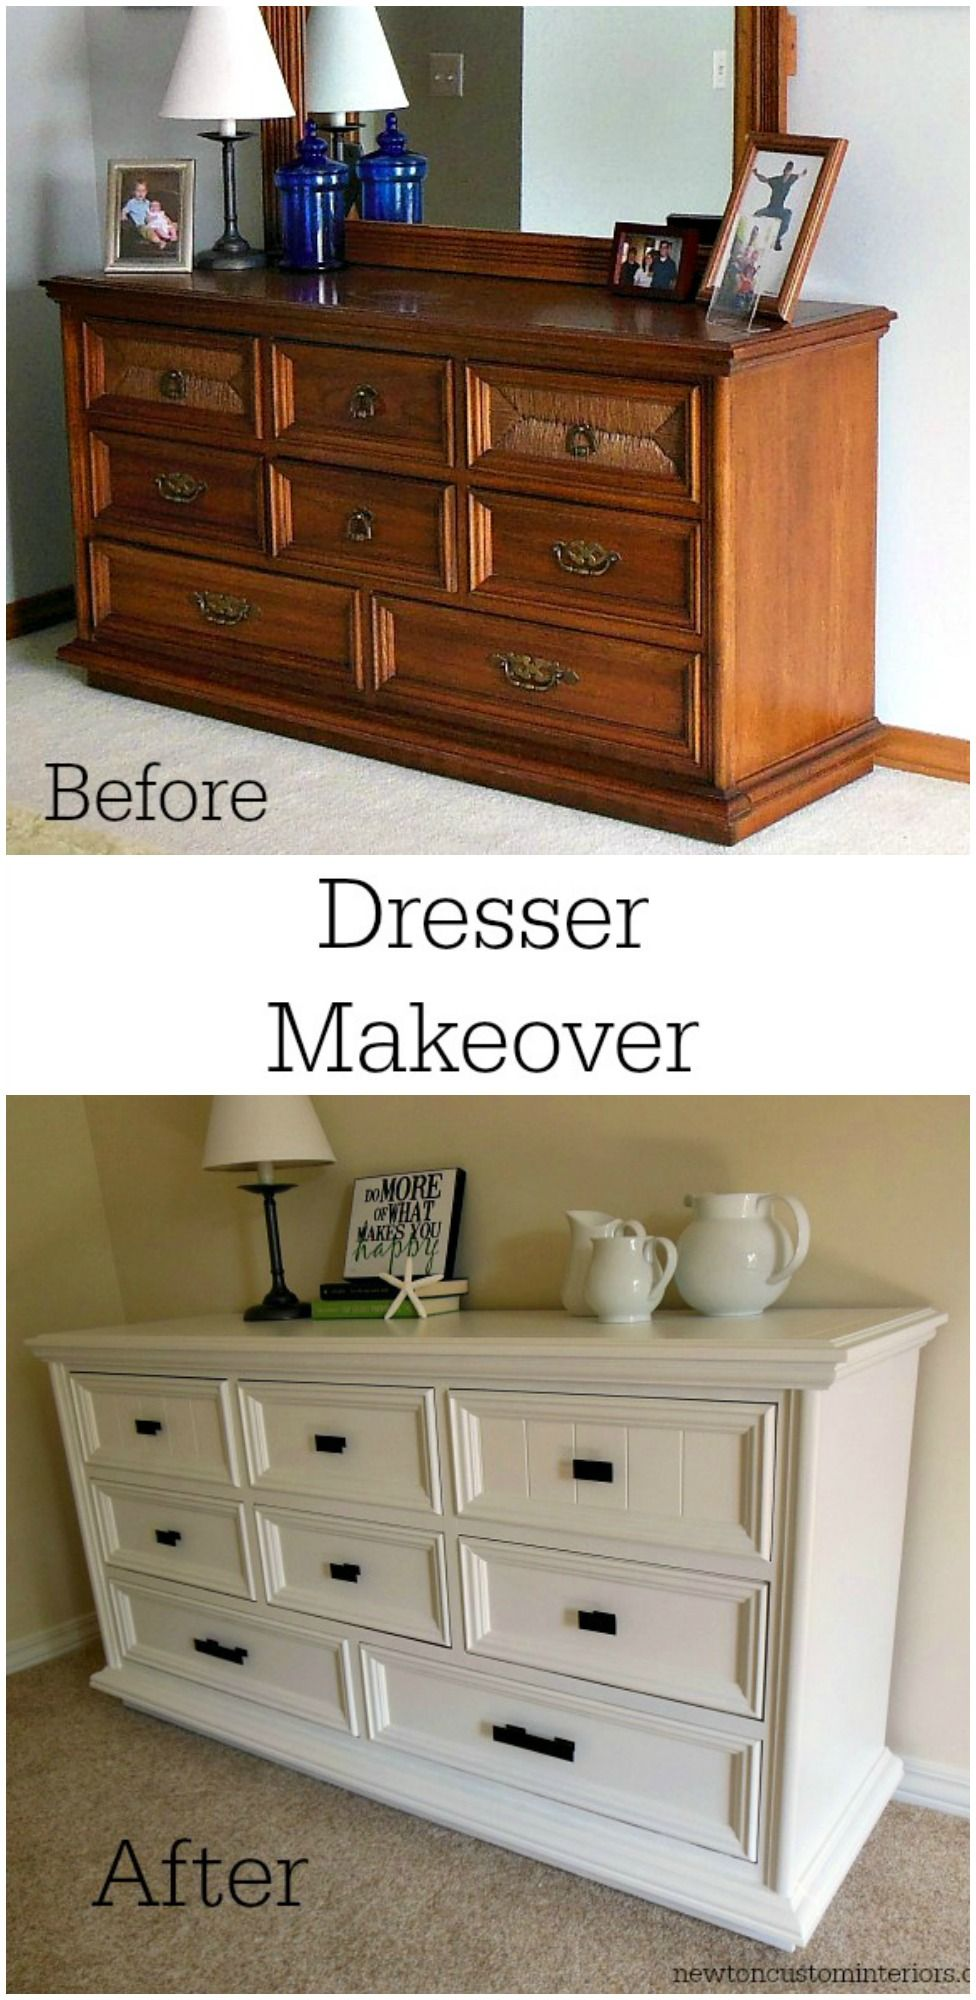 This dresser went from blah to fabulous with some paint and new